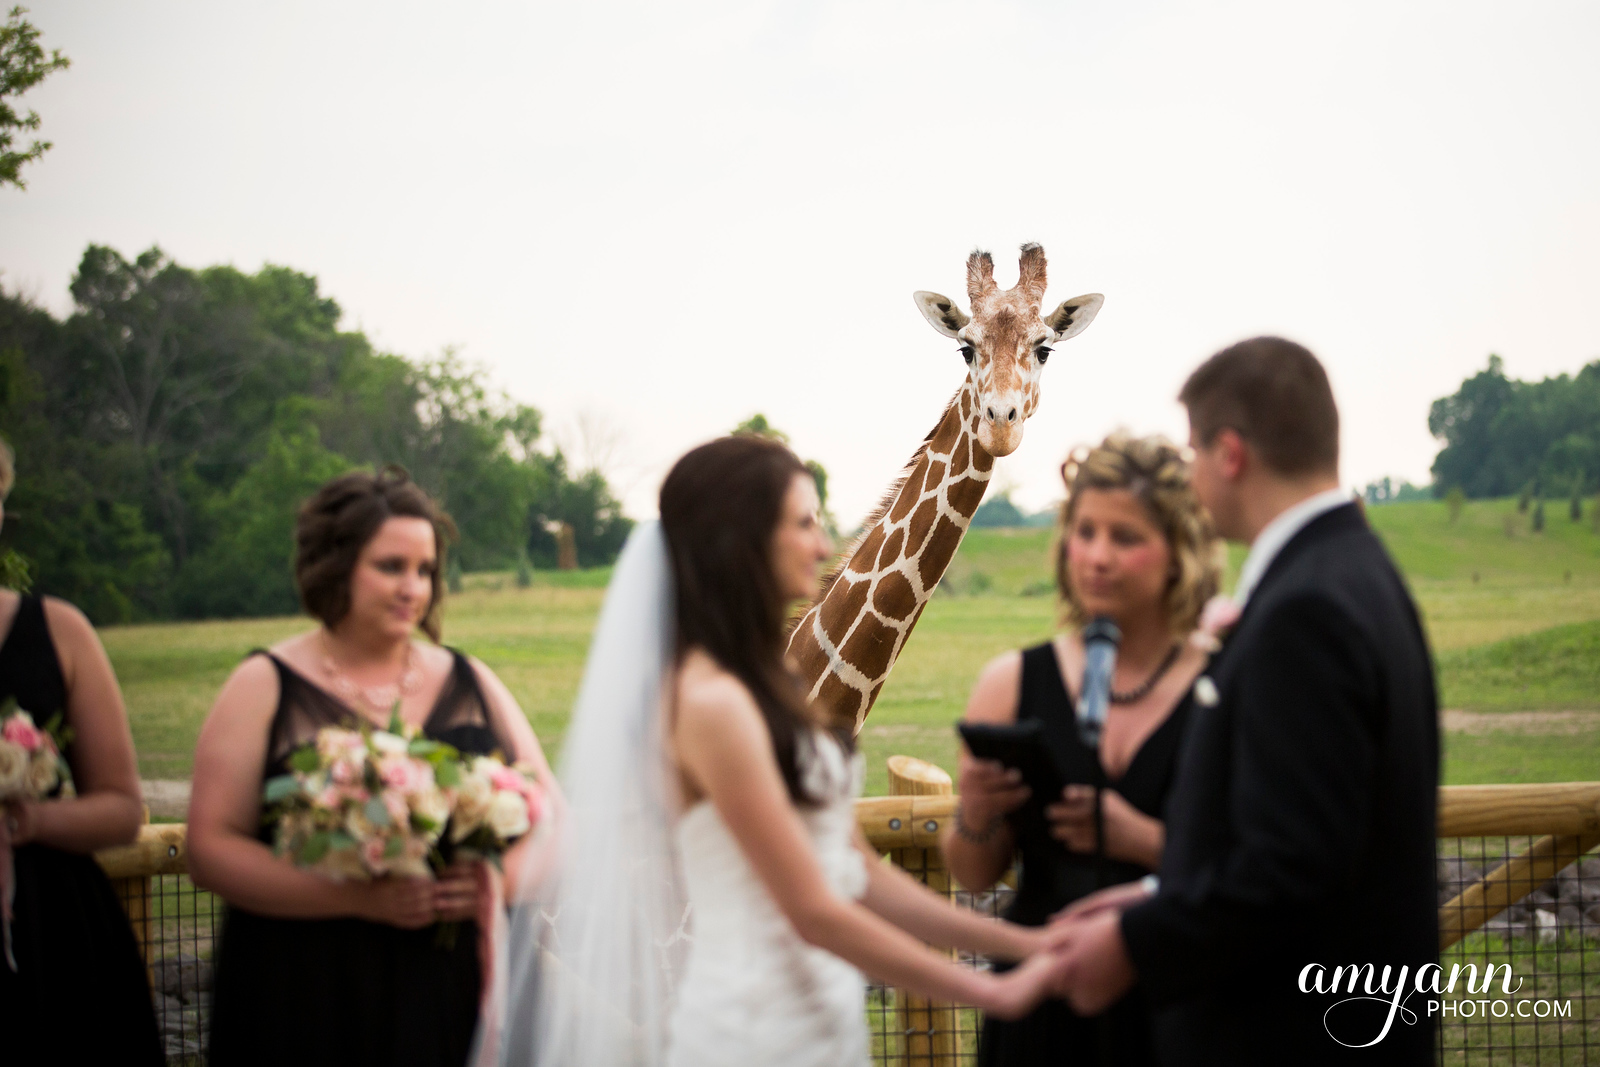 jillchris_weddingblog035